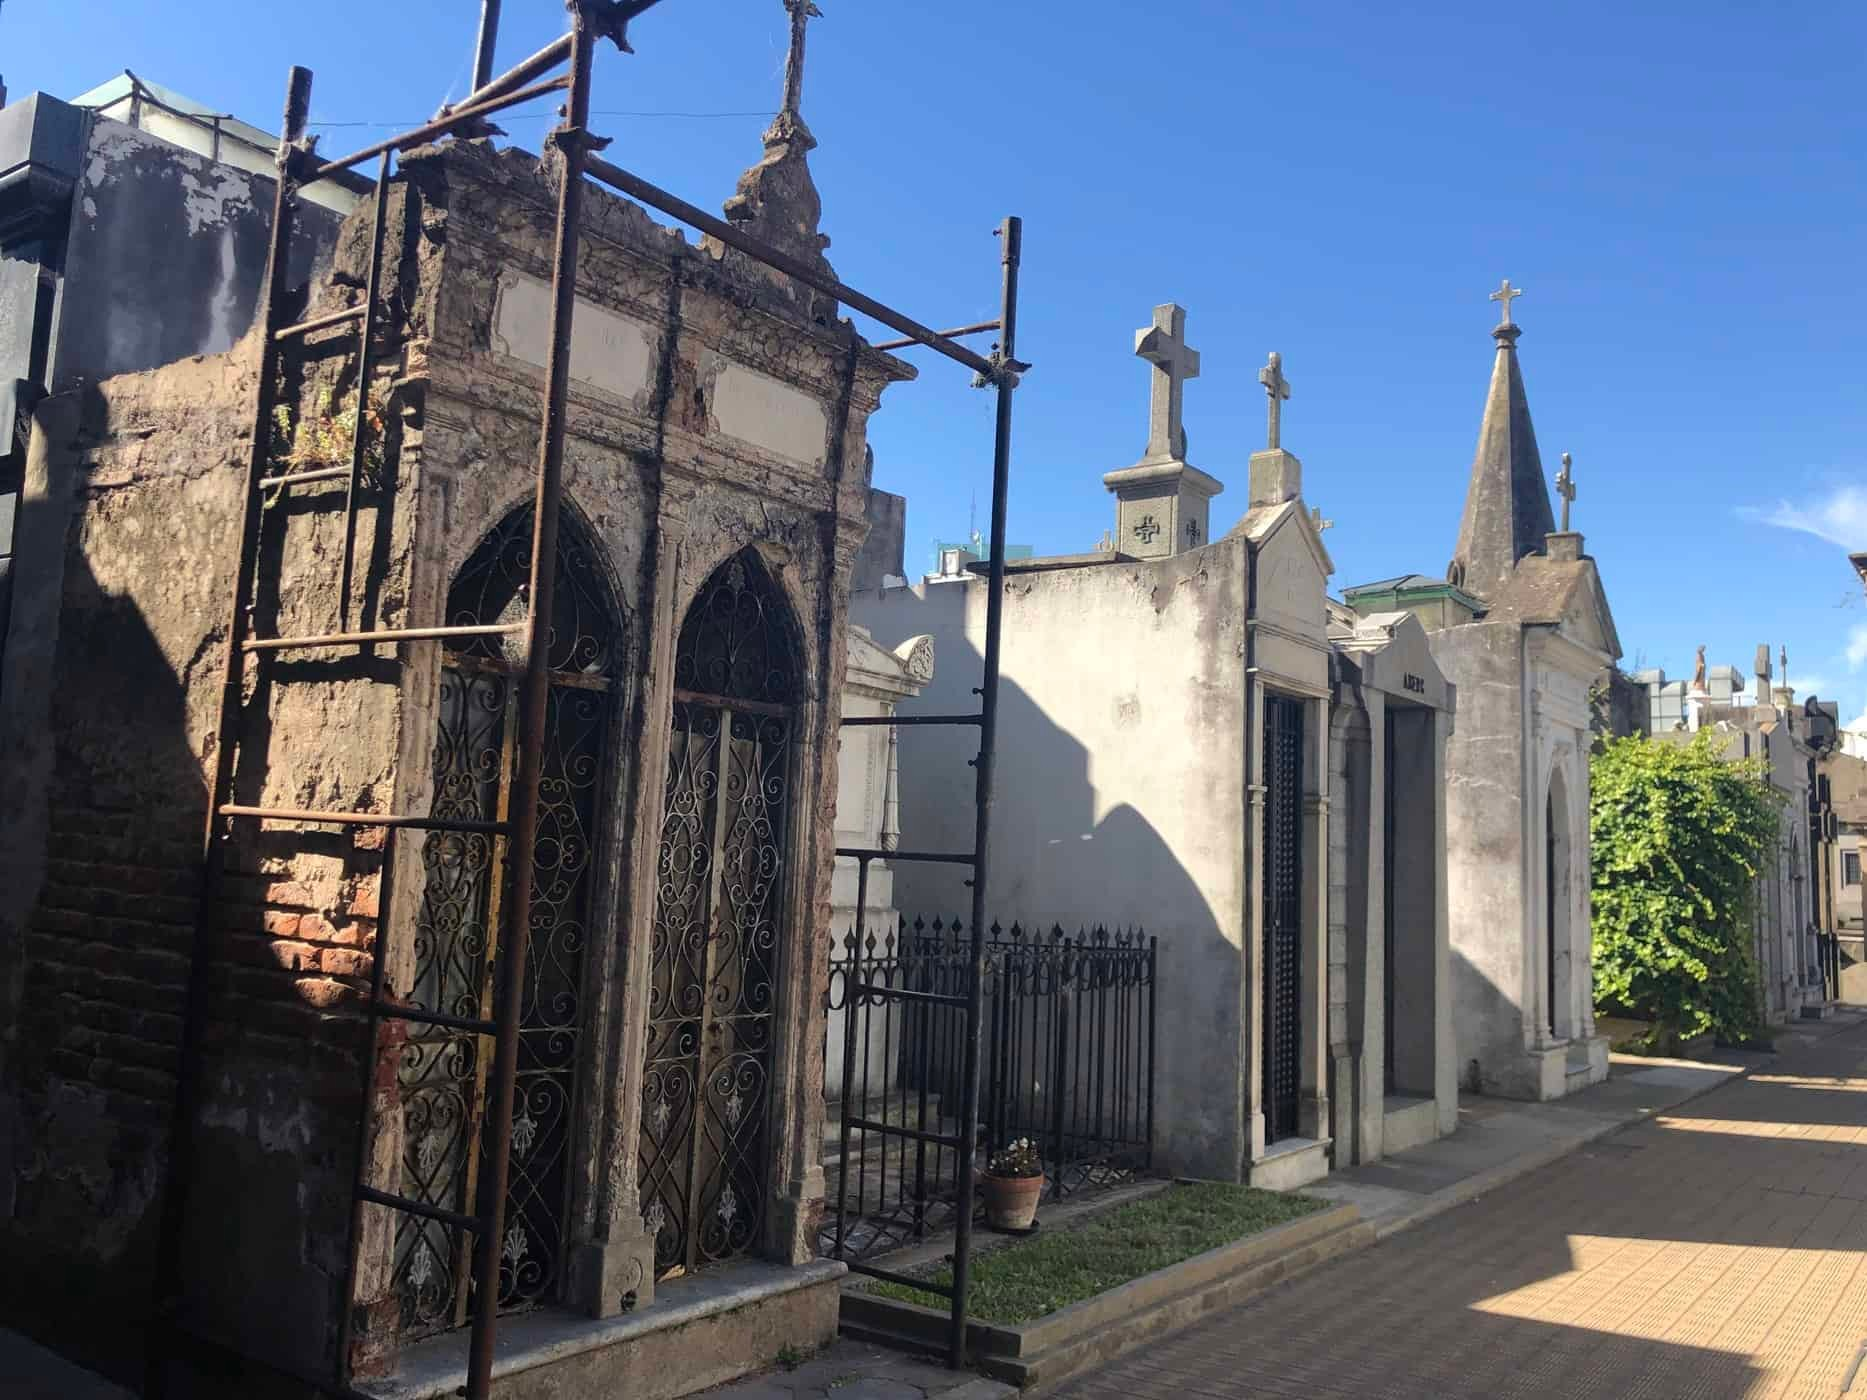 Mausuleoms and tombs in the cemetery. Buenos Aires.